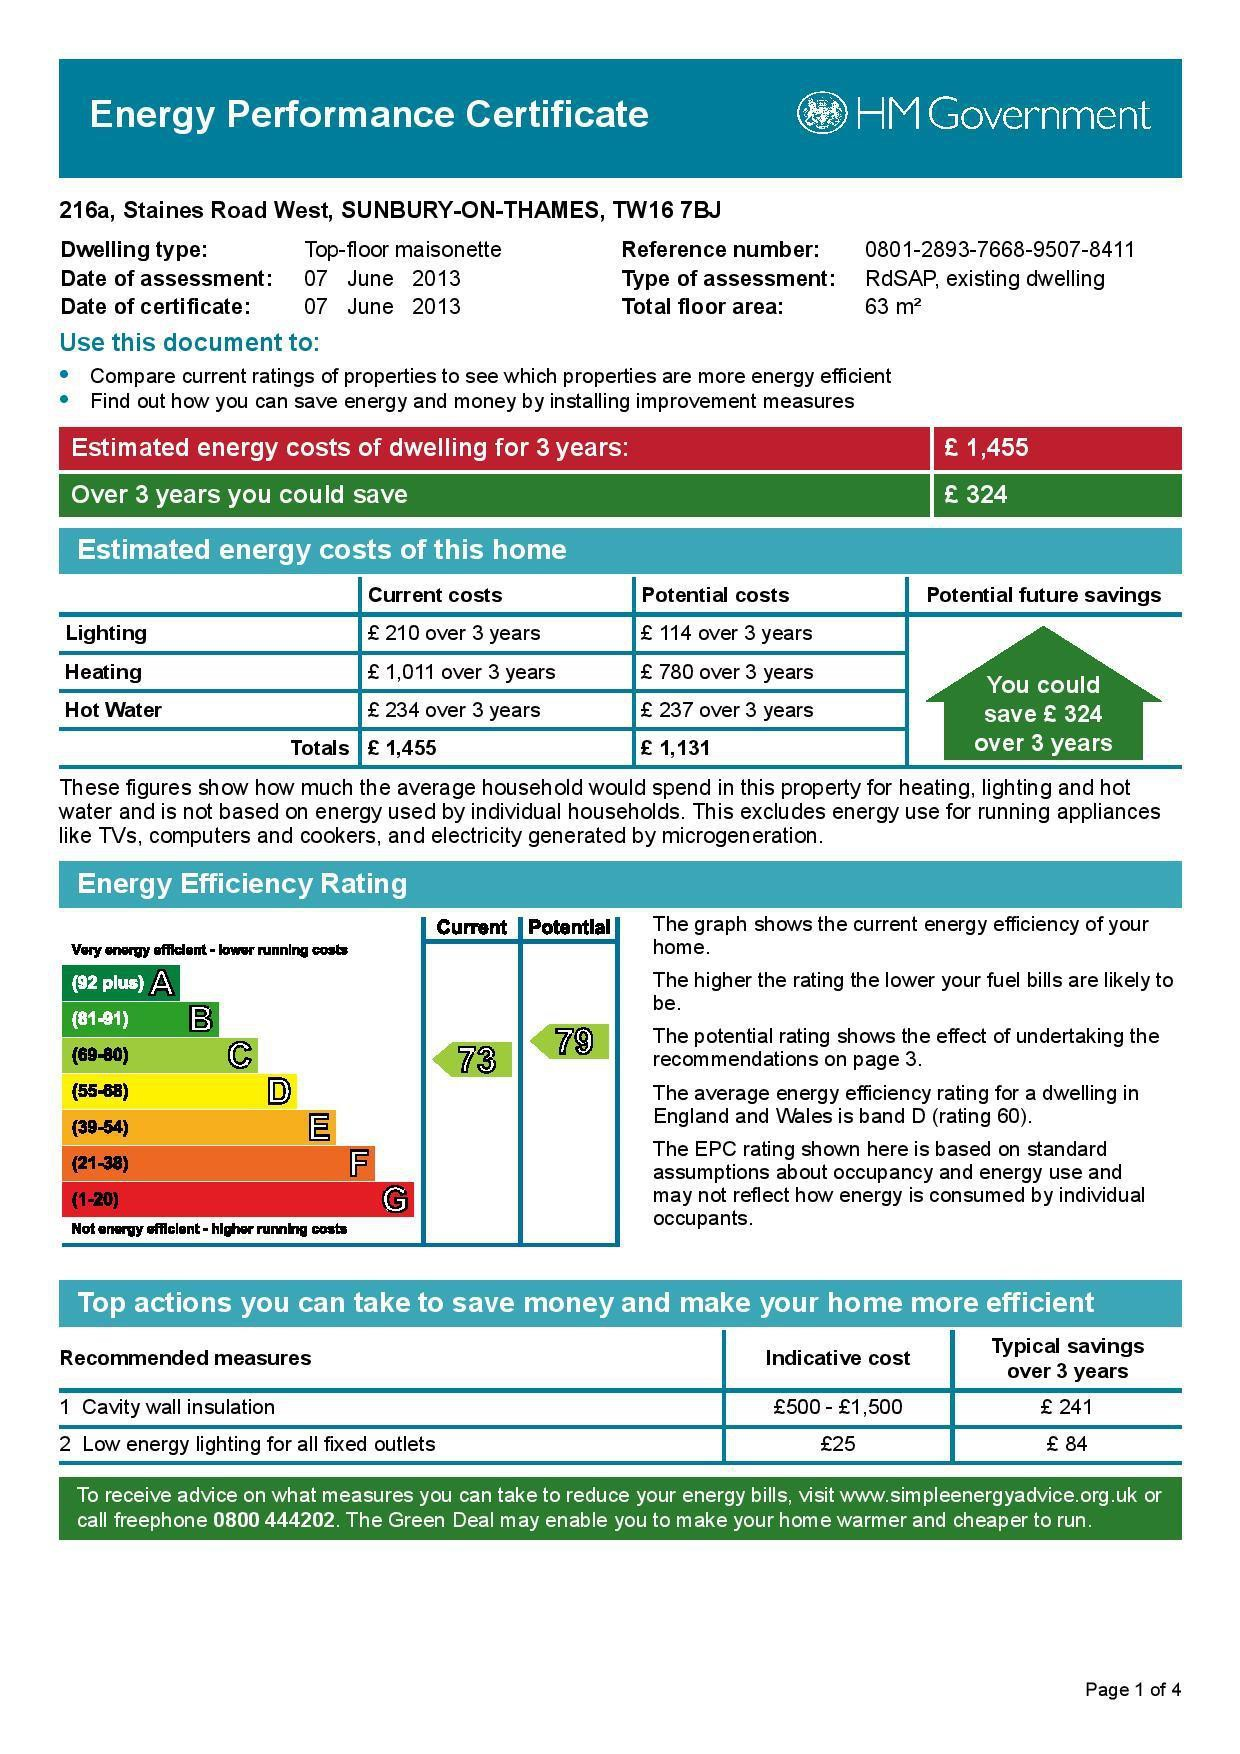 EPC Graph for 216a Staines Road West, Sunbury-On-Thames, Middlesex TW16 7BJ